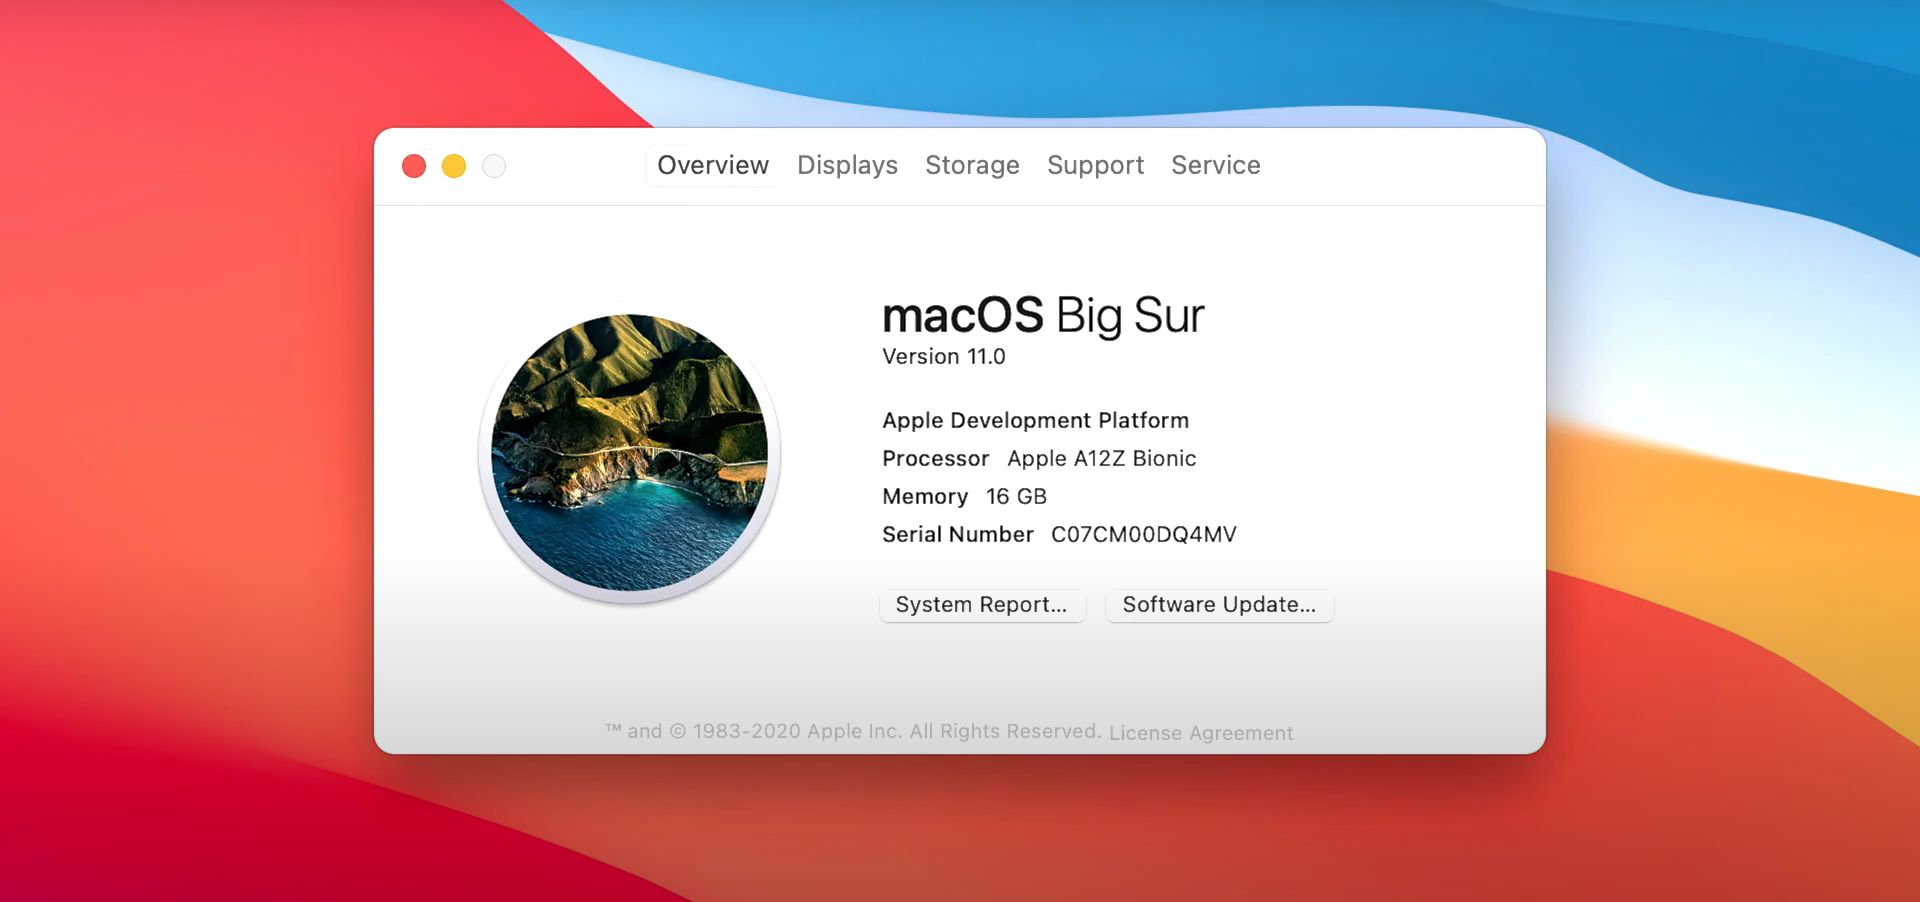 macOS Big Sur About This Mac dialog box running on an Apple A12Z